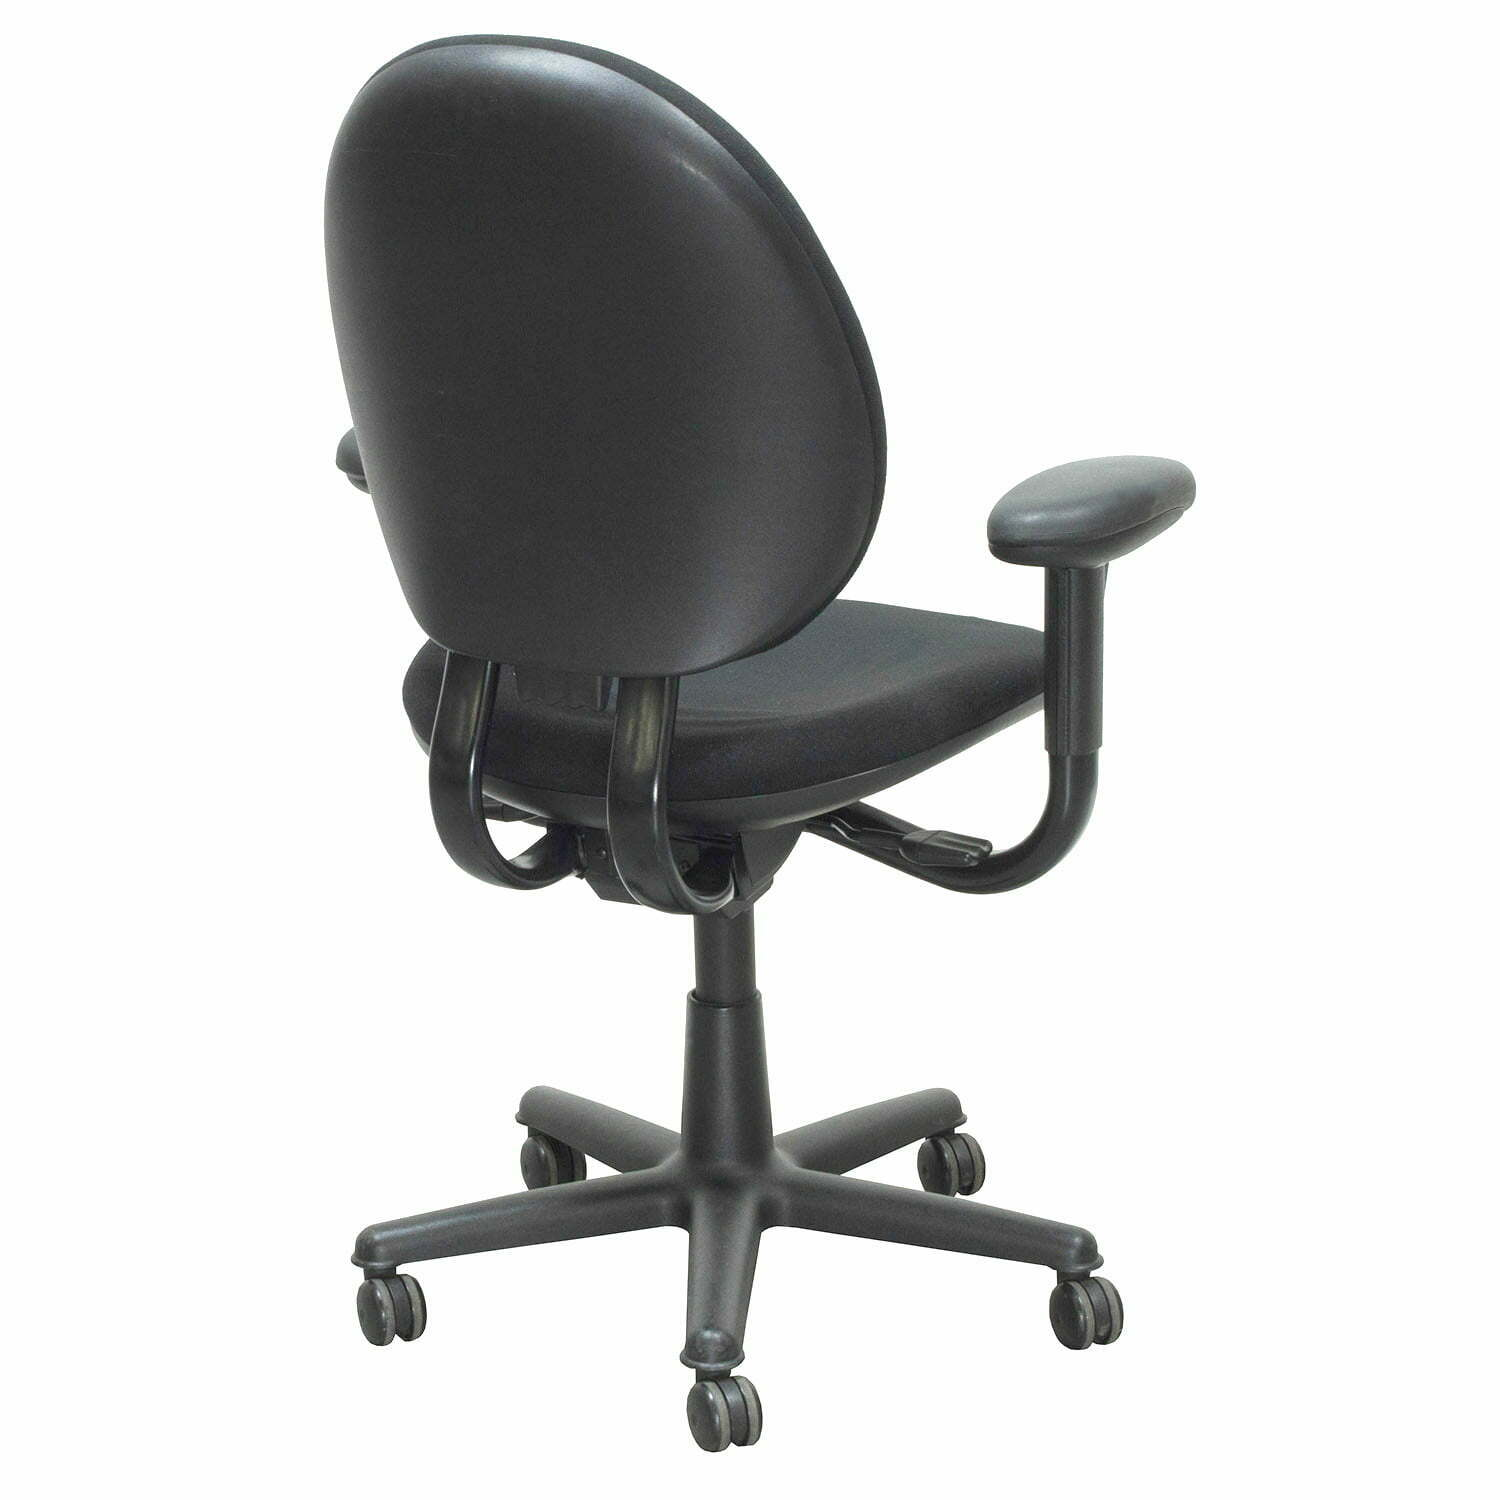 Steelcase Desk Chair Steelcase Criterion Office Chair Unisource Office